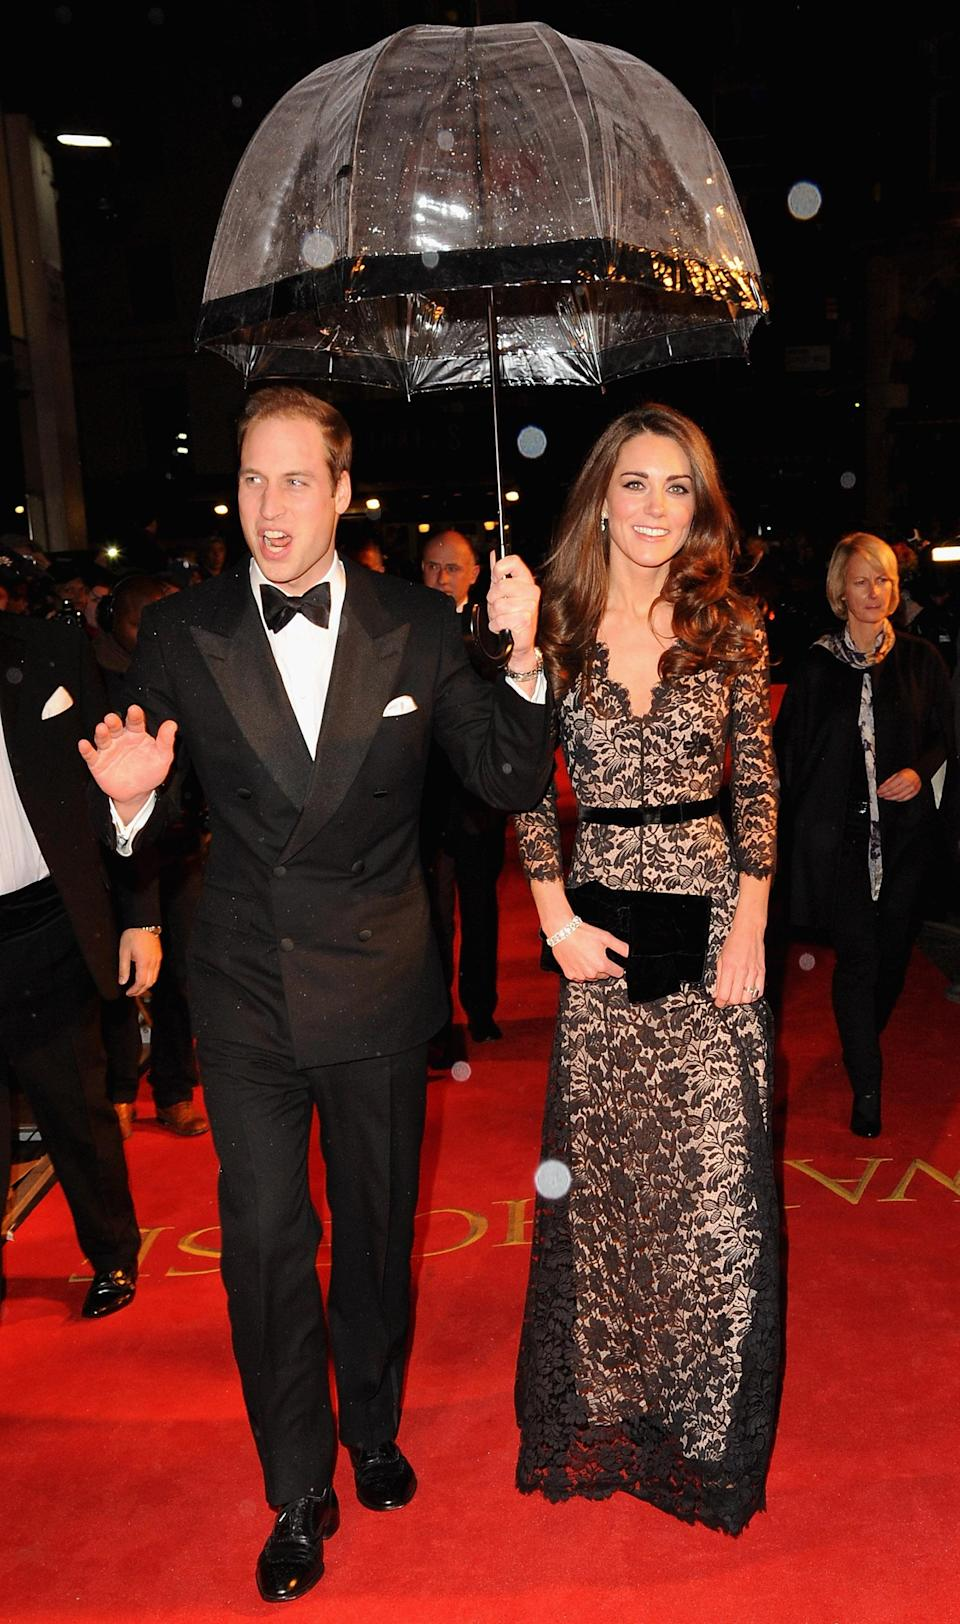 <p>This time, the Duchess of Cambridge kept it simple in a £2,900 Temperley London dress to match Prince William's monochrome tux. <em>[Photo: Getty]</em> </p>